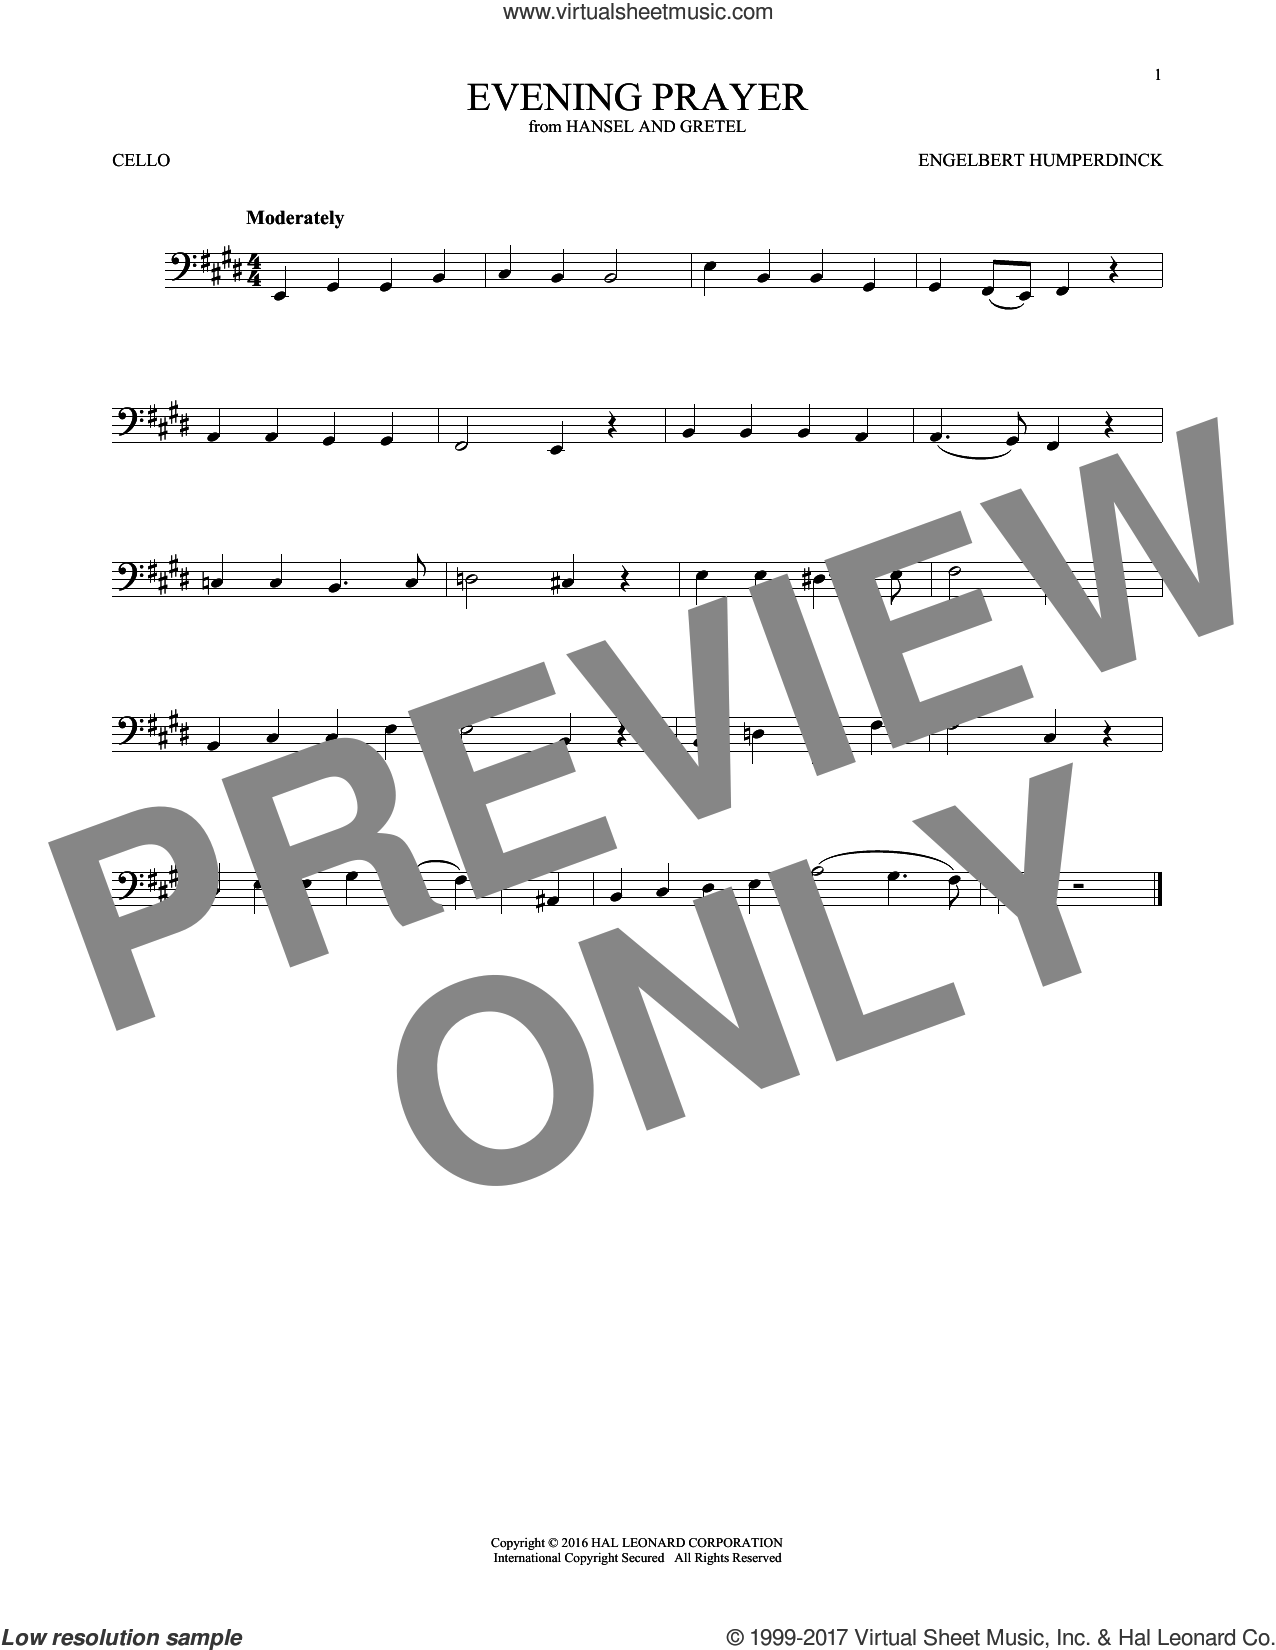 Evening Prayer sheet music for cello solo by Engelbert Humperdinck, intermediate skill level